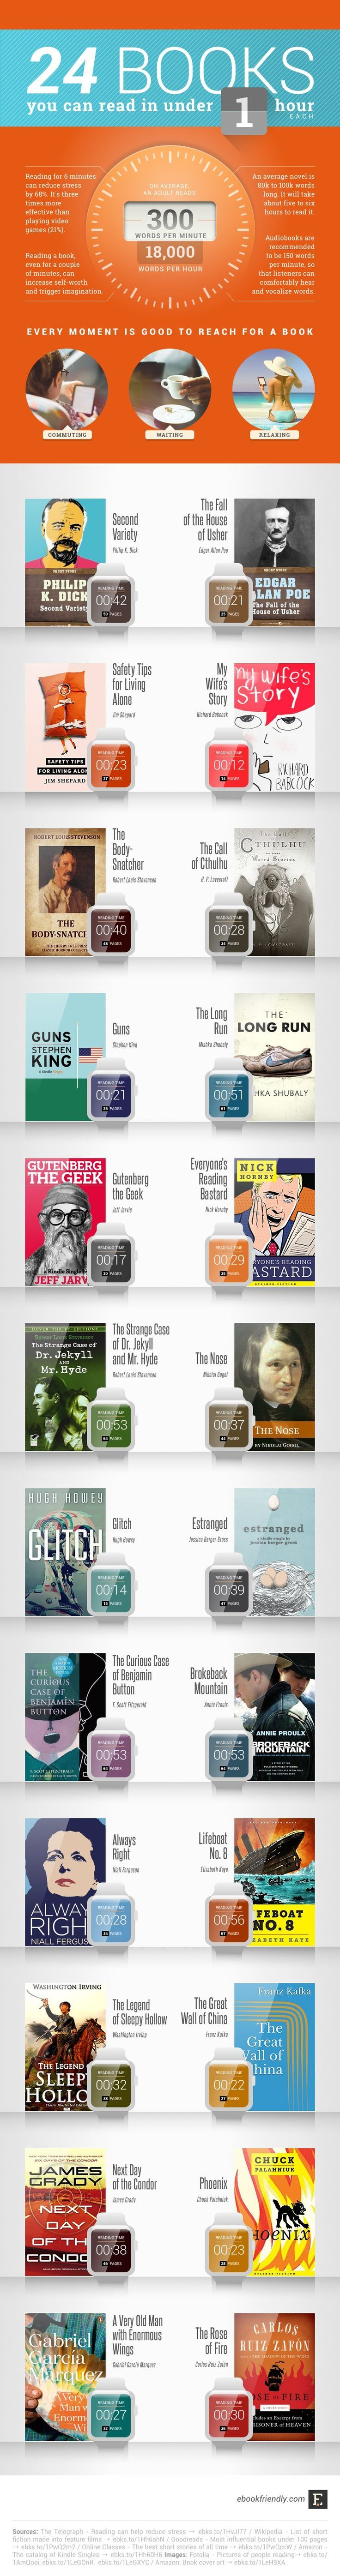 Books you can read under hour each – #infographic